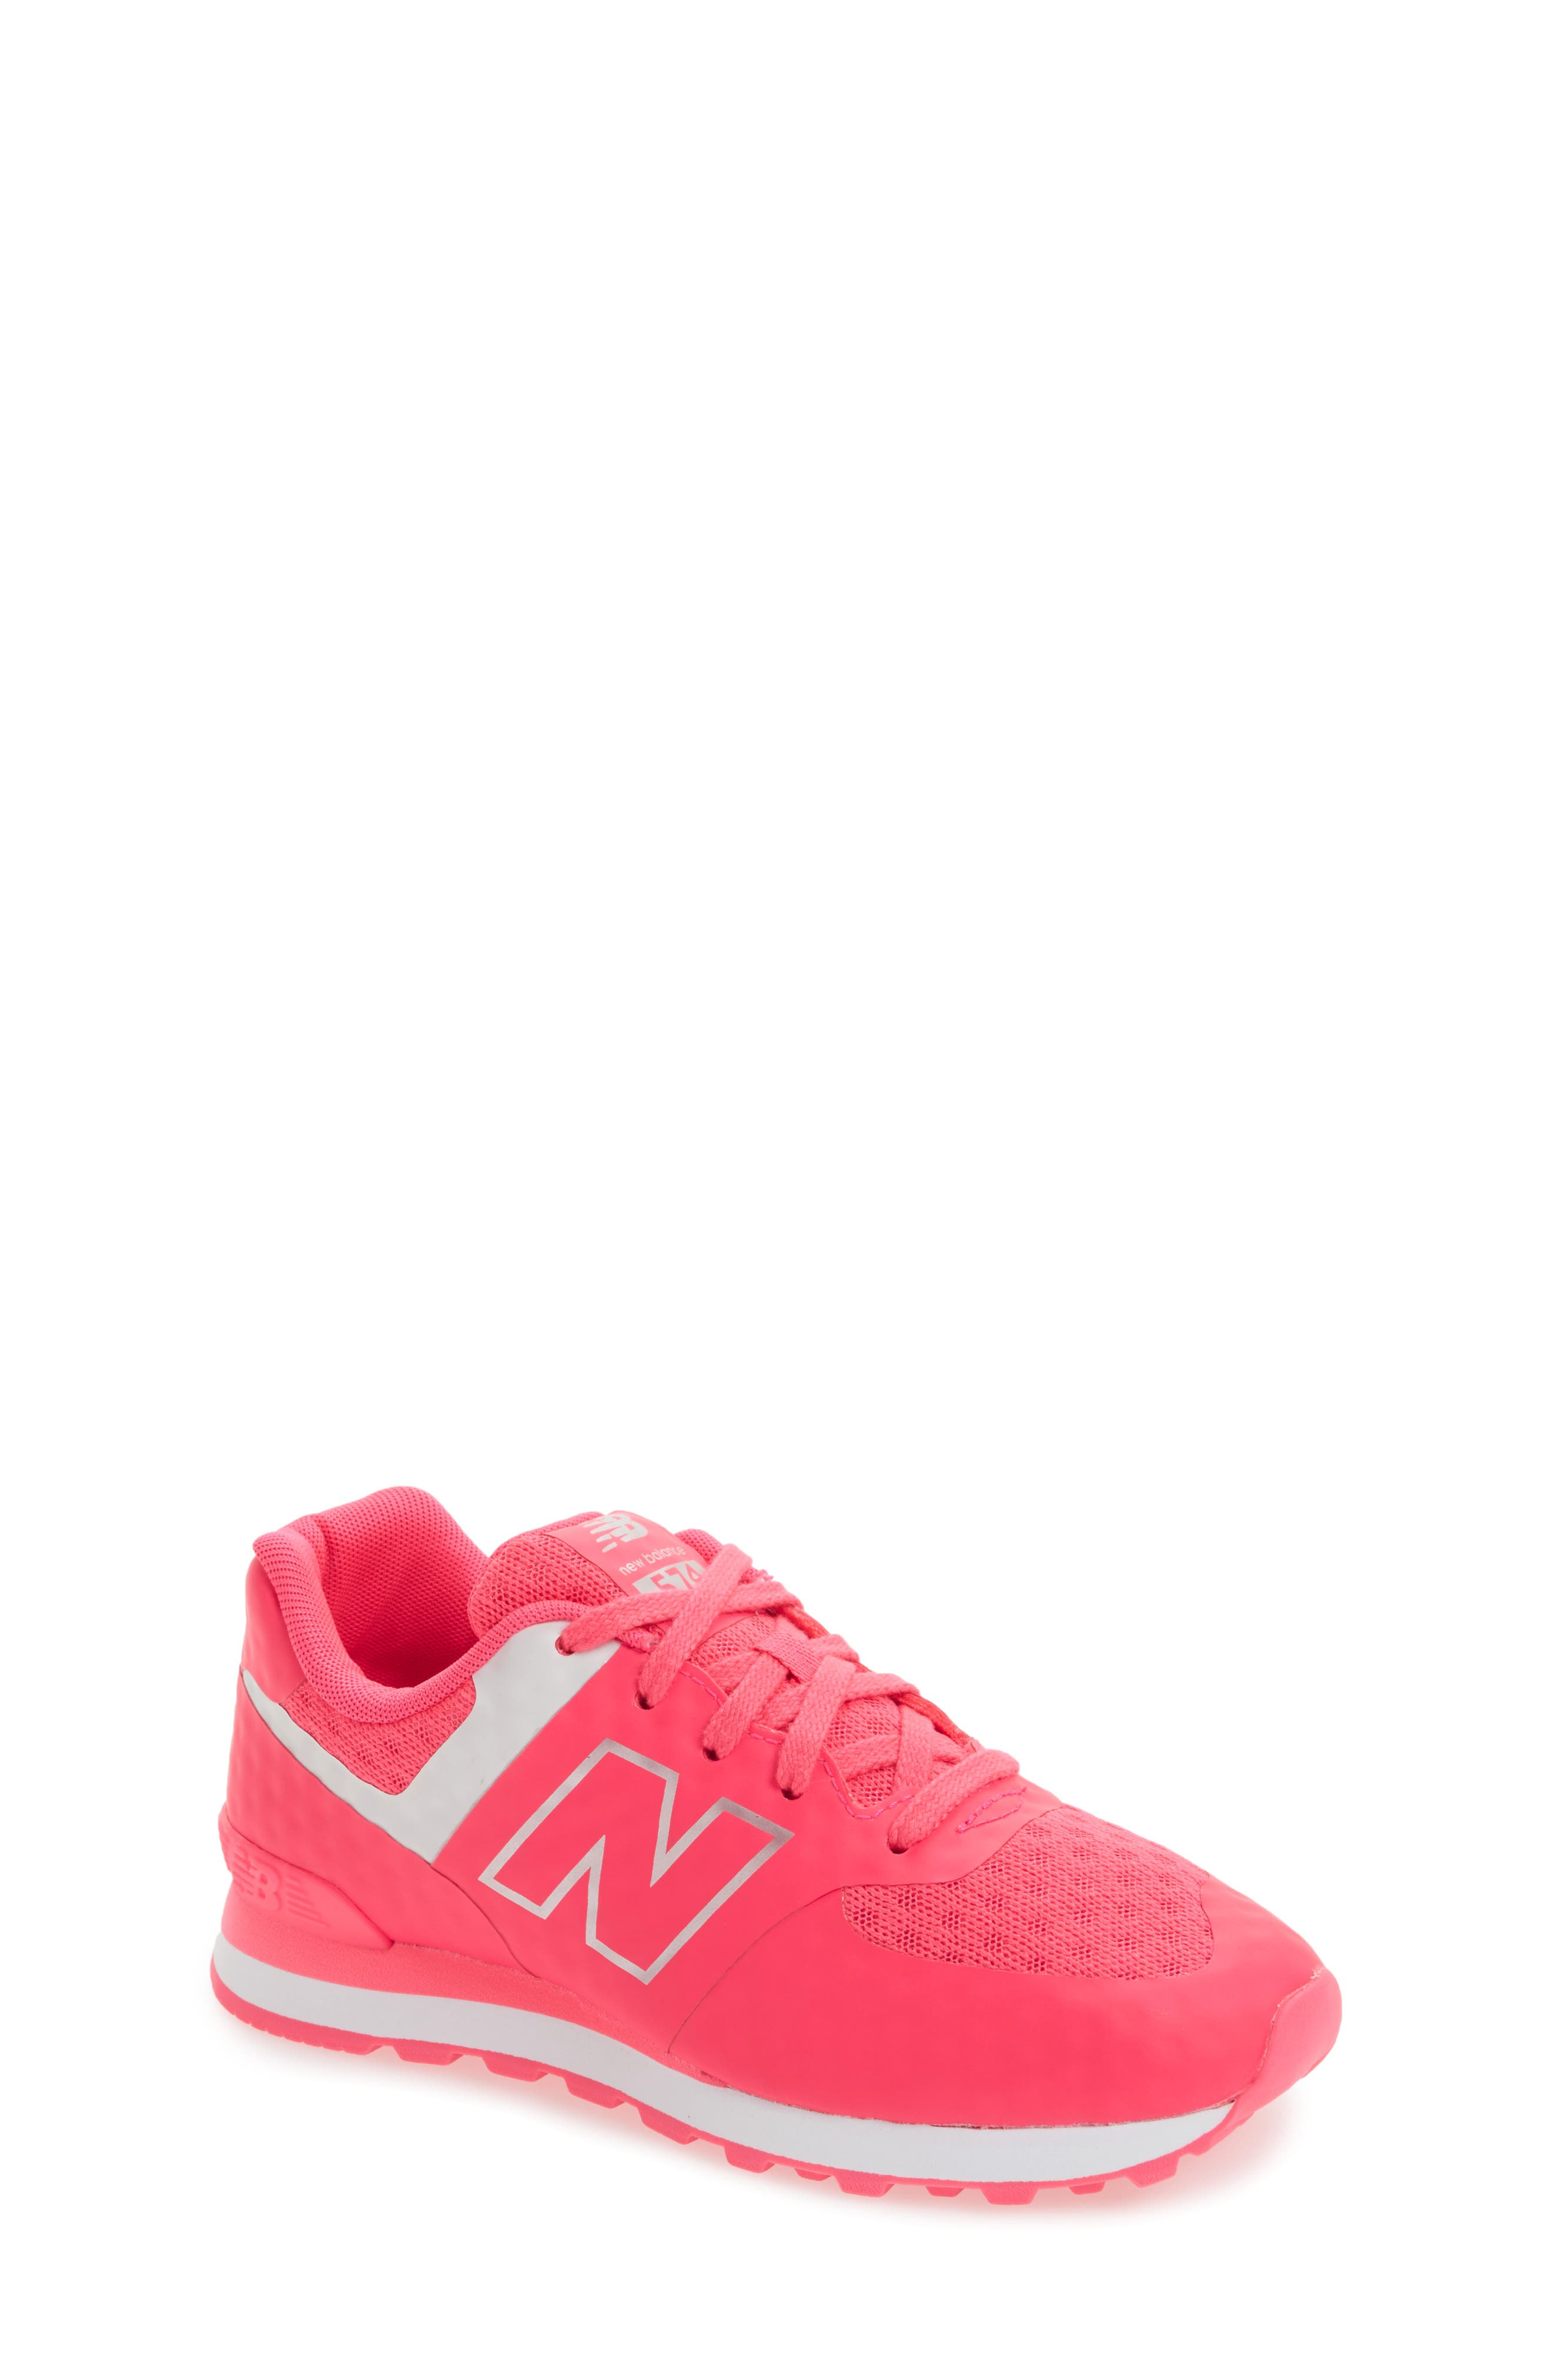 New Balance 574 Sneaker (Baby, Walker, Toddler, Little Kid & Big Kid)